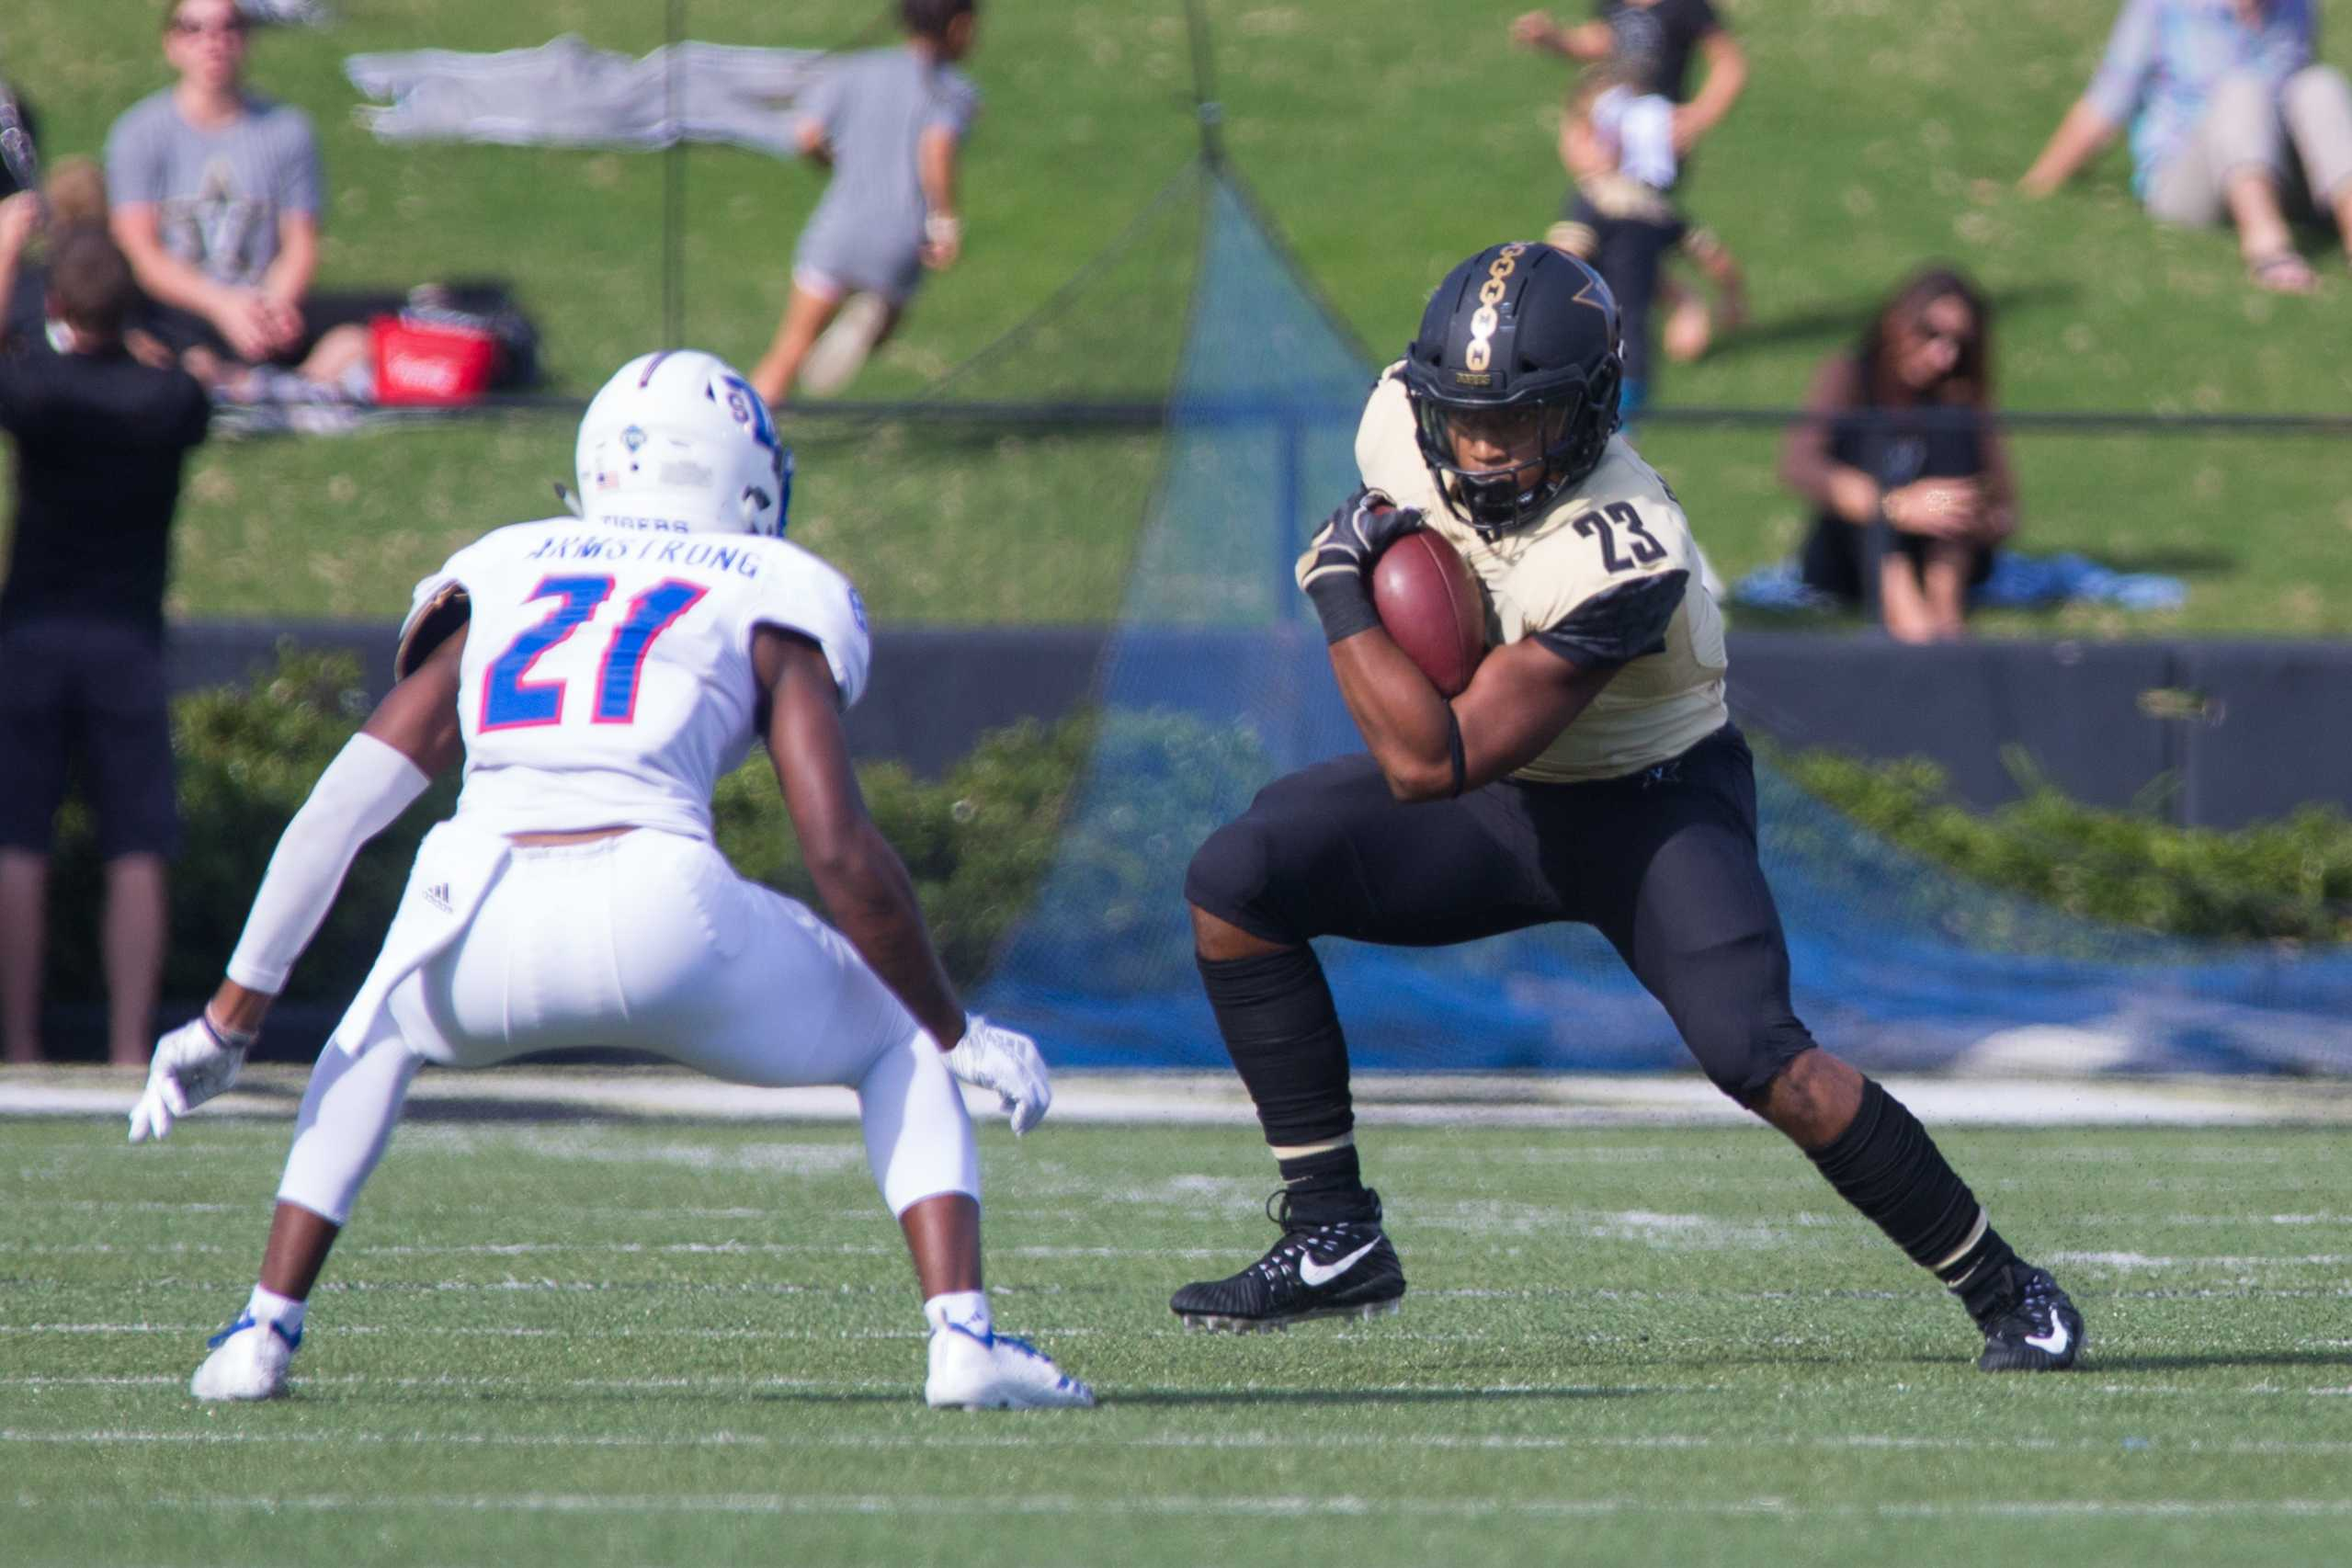 Vanderbilt narrowly avoids disaster in 31-27 win over Tennessee State